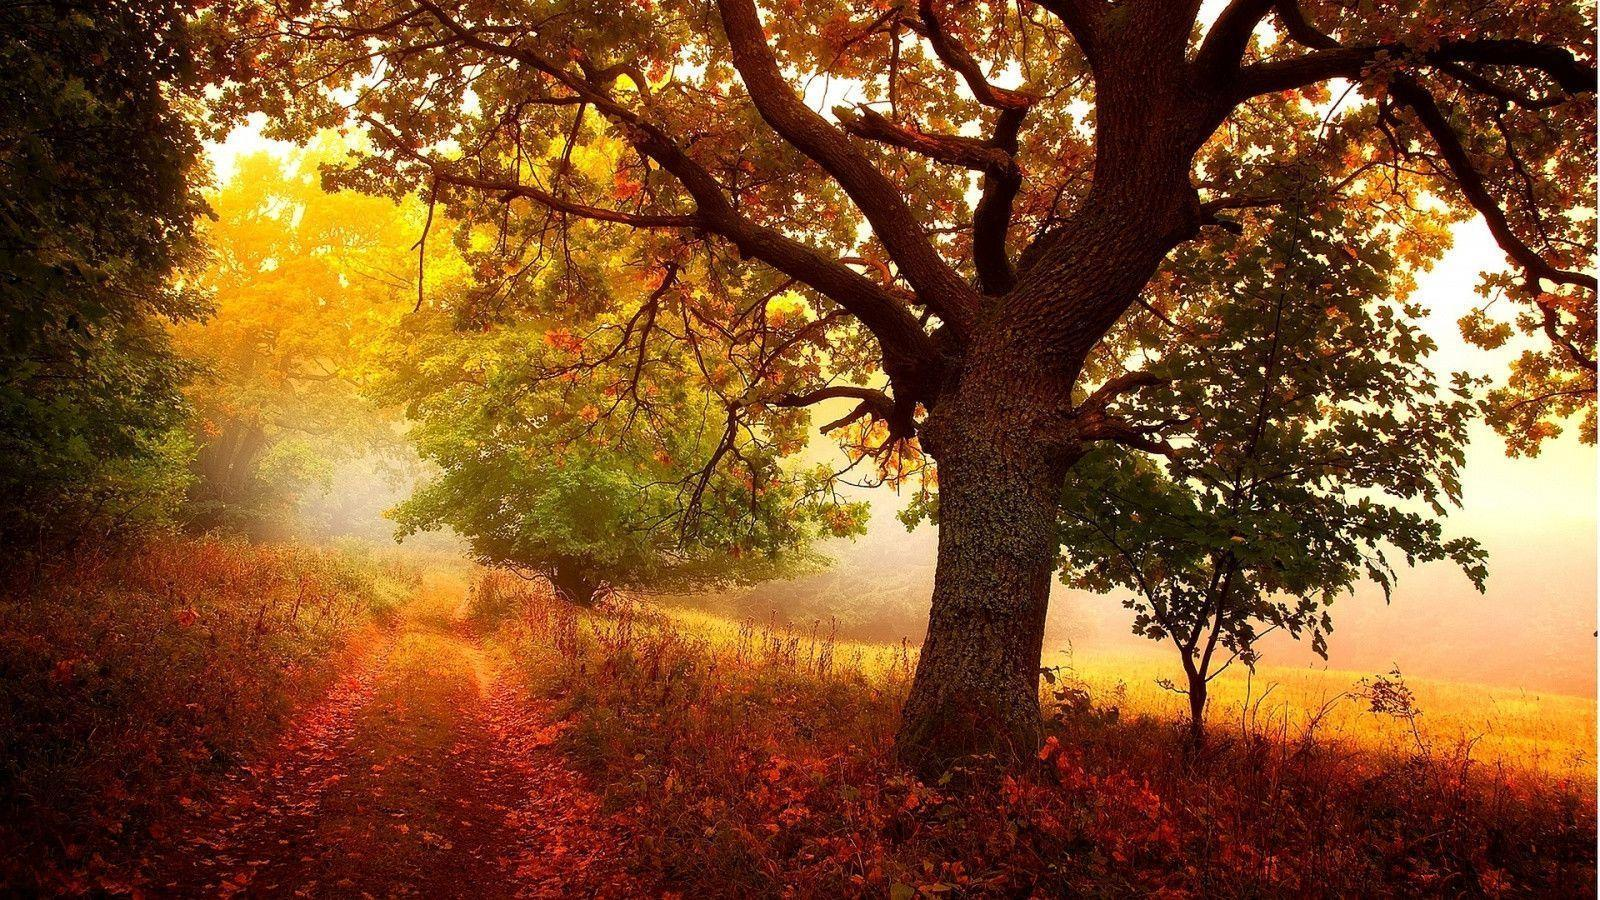 fall woods backgrounds wallpapers - photo #28